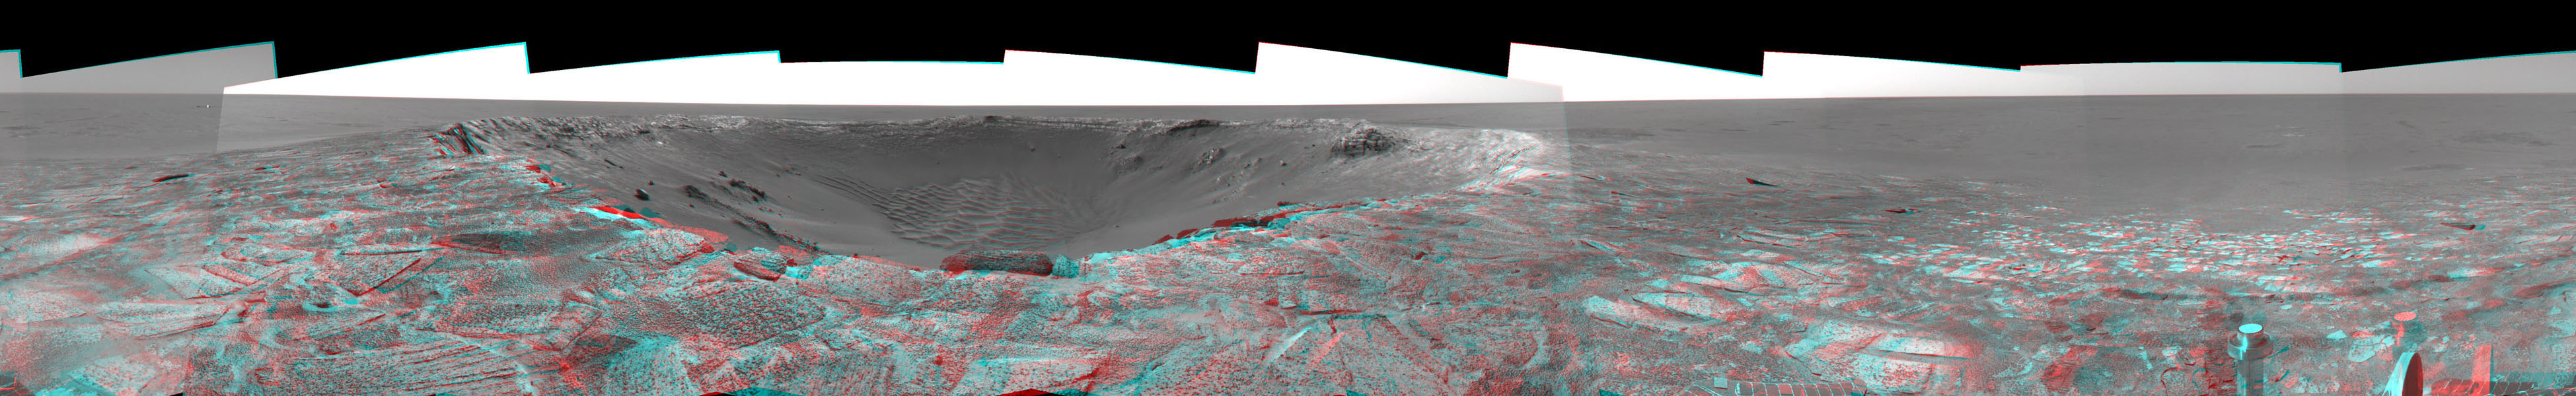 This 3D mosaic, created from images taken by NASA's Mars Exploration Rover Opportunity on sols 115 and 116 (May 21 and 22, 2004) provides a dramatic view of 'Endurance Crater.' 3D glasses are necessary to view this image.